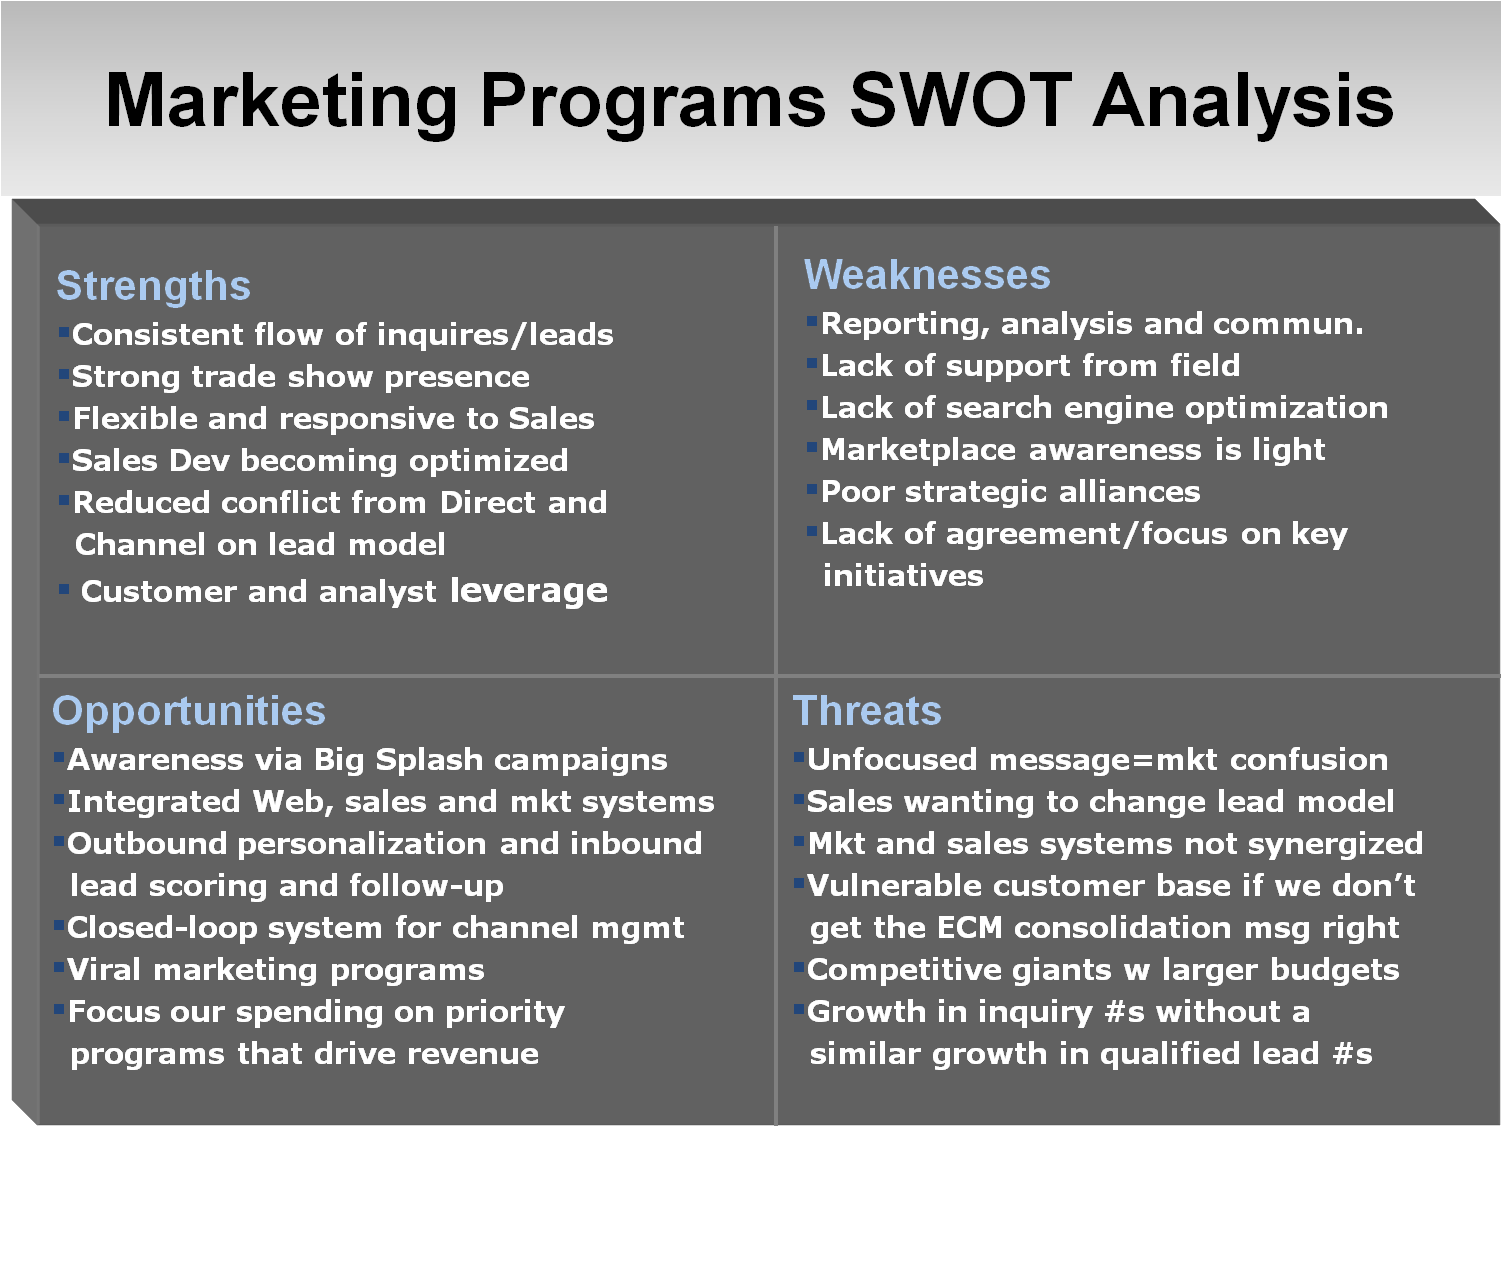 Swot analysis example fashion retail 81